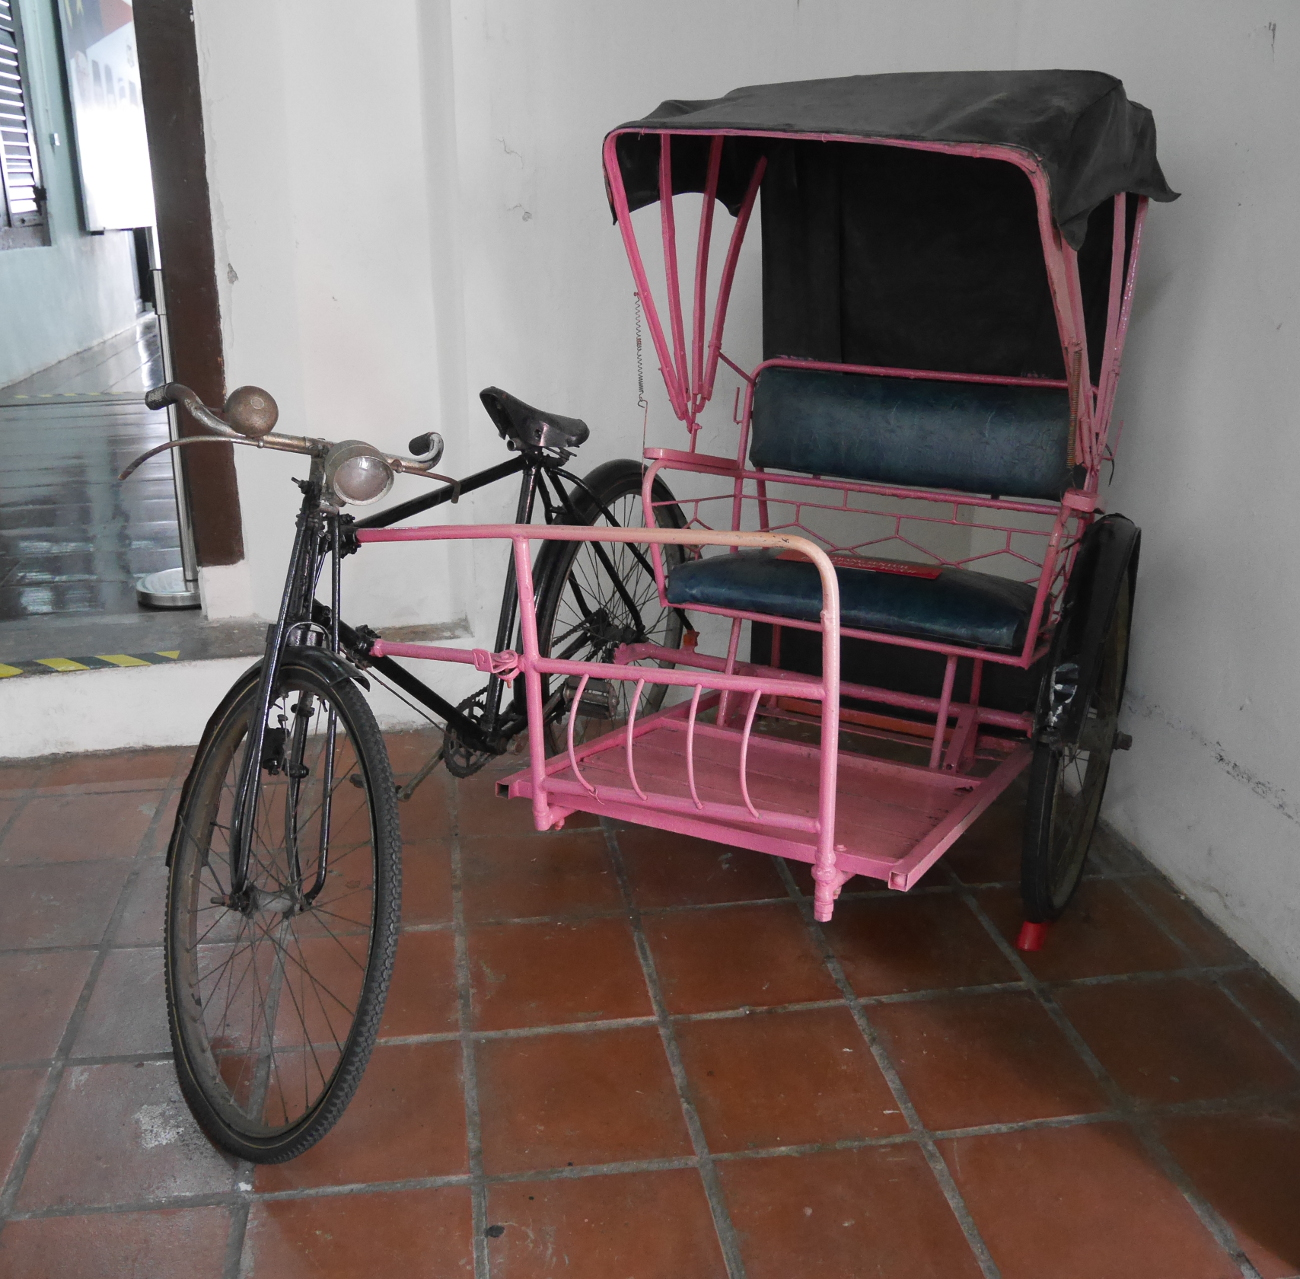 Trishaw in the History and Ethnography Museum, Malacca.